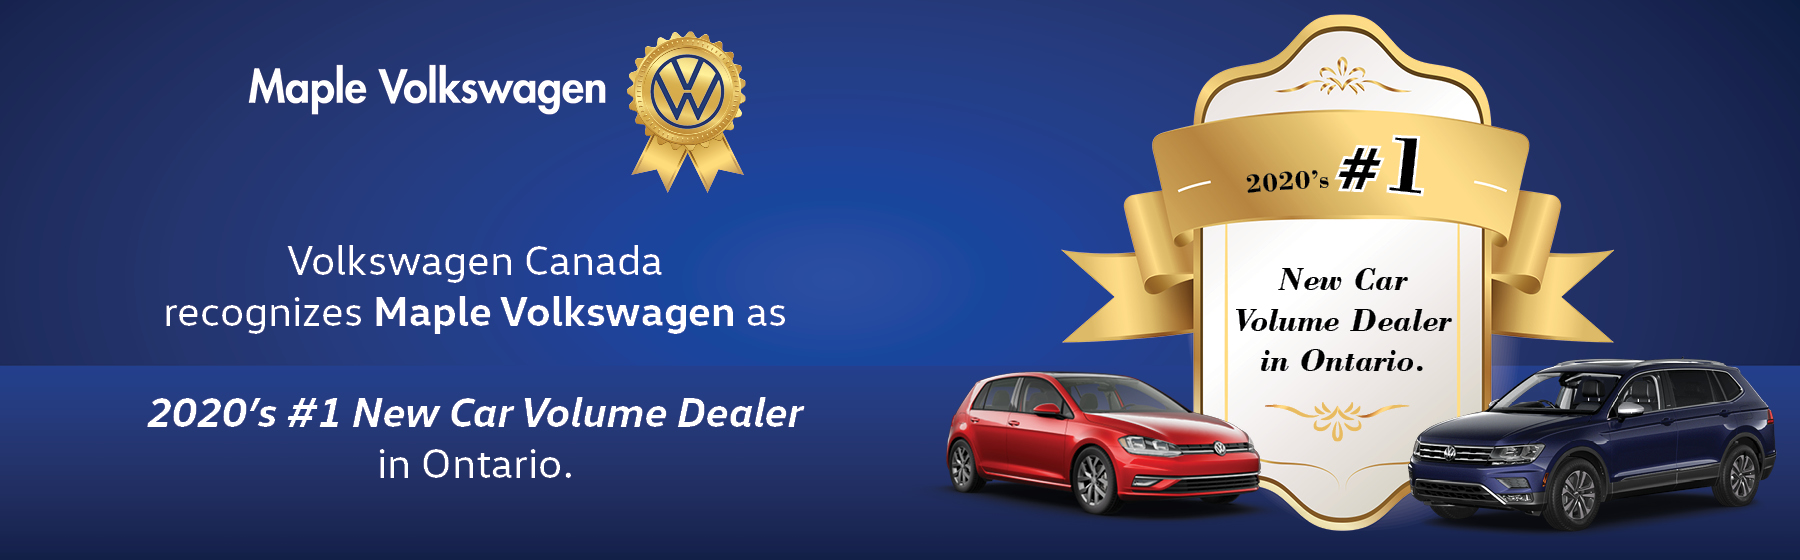 164a 21 Maple Volkswagen Vw Canada Award Feb 2021